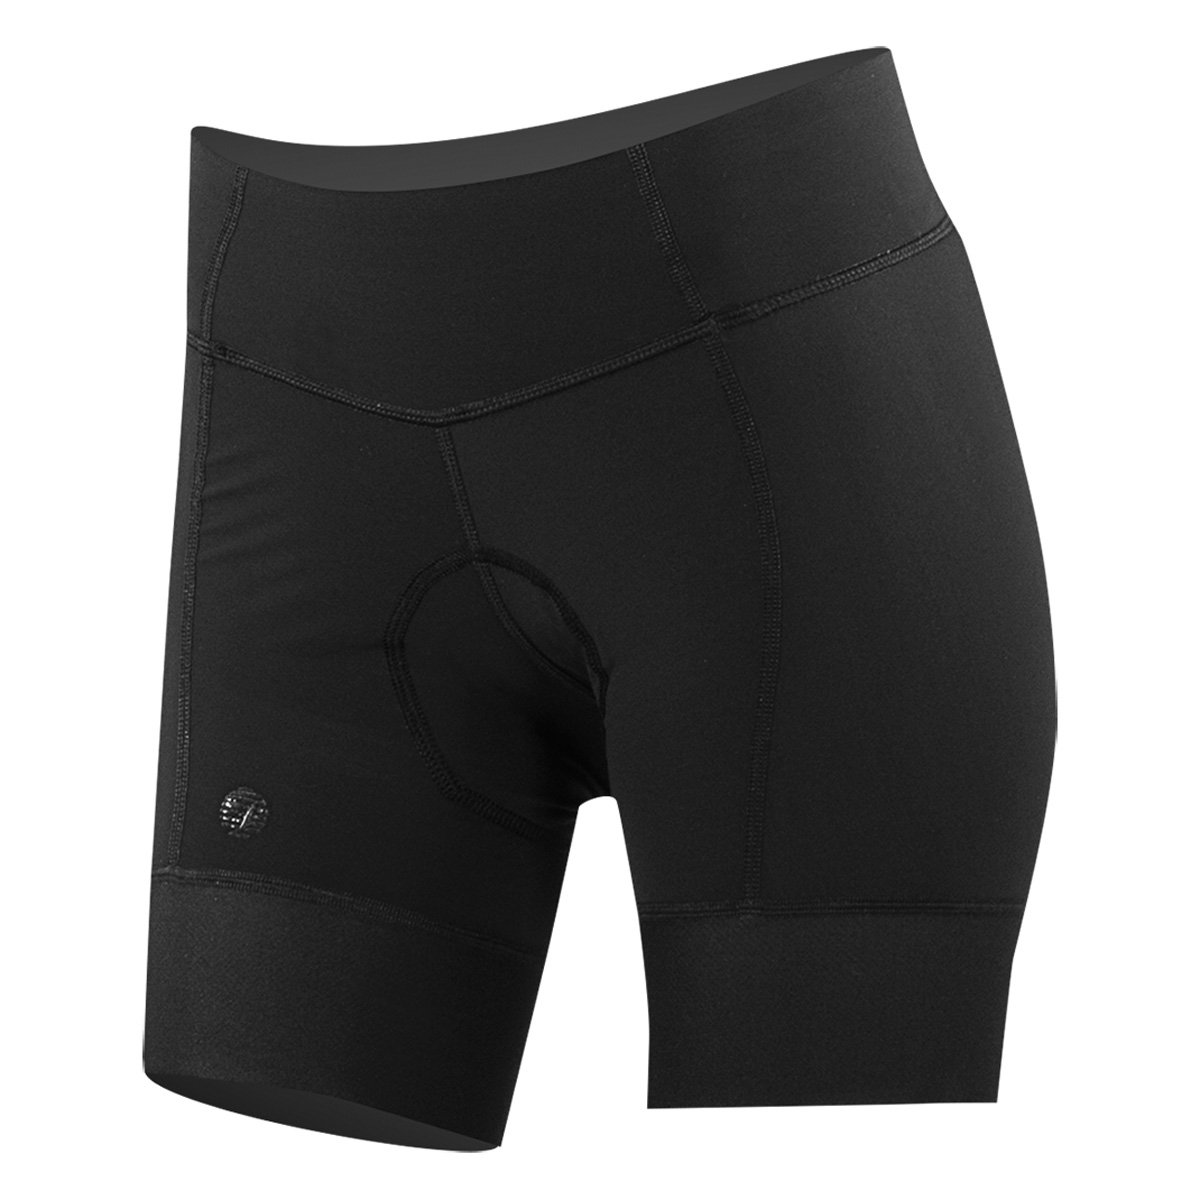 Shebeest Pre-Dyed black Cycling Shorts (medium)